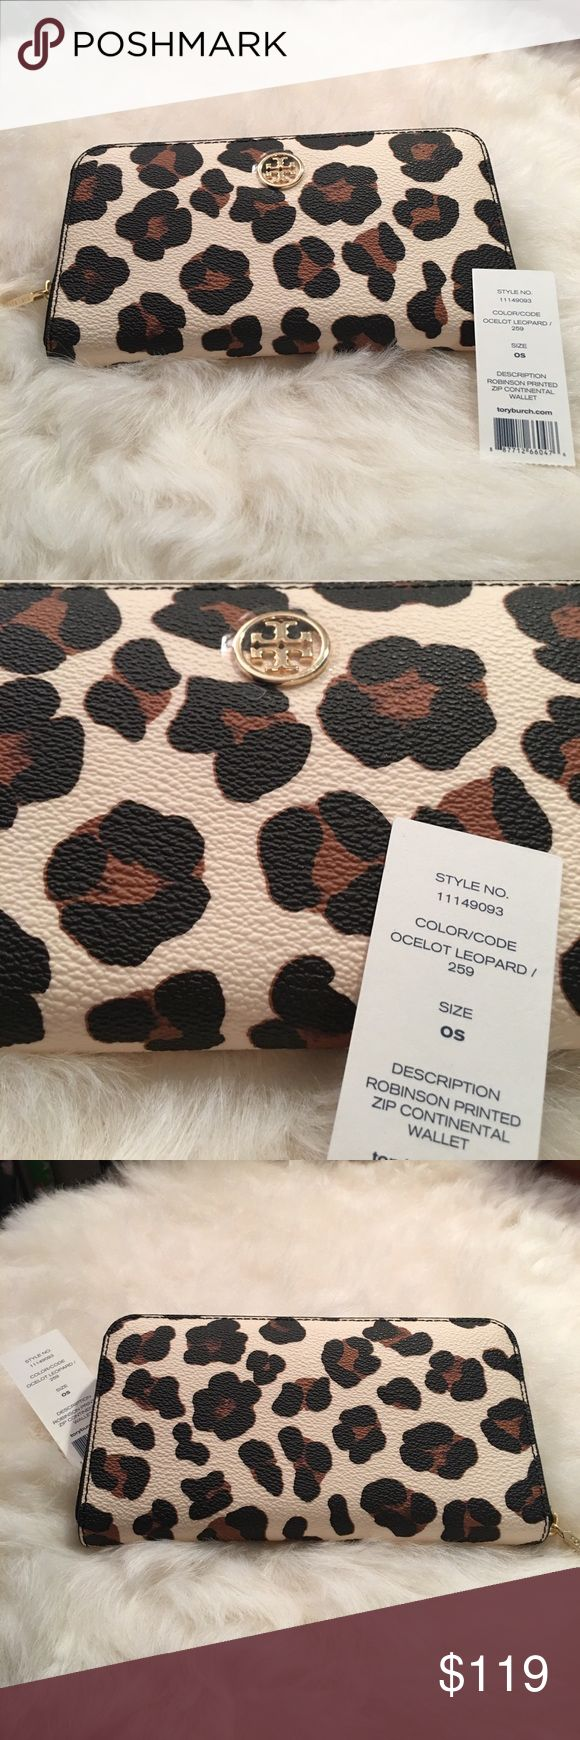 "NEW Tory Burch Continental Wallet in Ocelot Leop NEW Tory Burch Continental Wallet in Ocelot Leopard! Standard Continental Wallet size 7.5""x 4""x 1"", has zipper interior coin pocket, 8 card slots and 4 additional compartments, NEW and AUTHENTIC Tory Burch Bags Wallets"